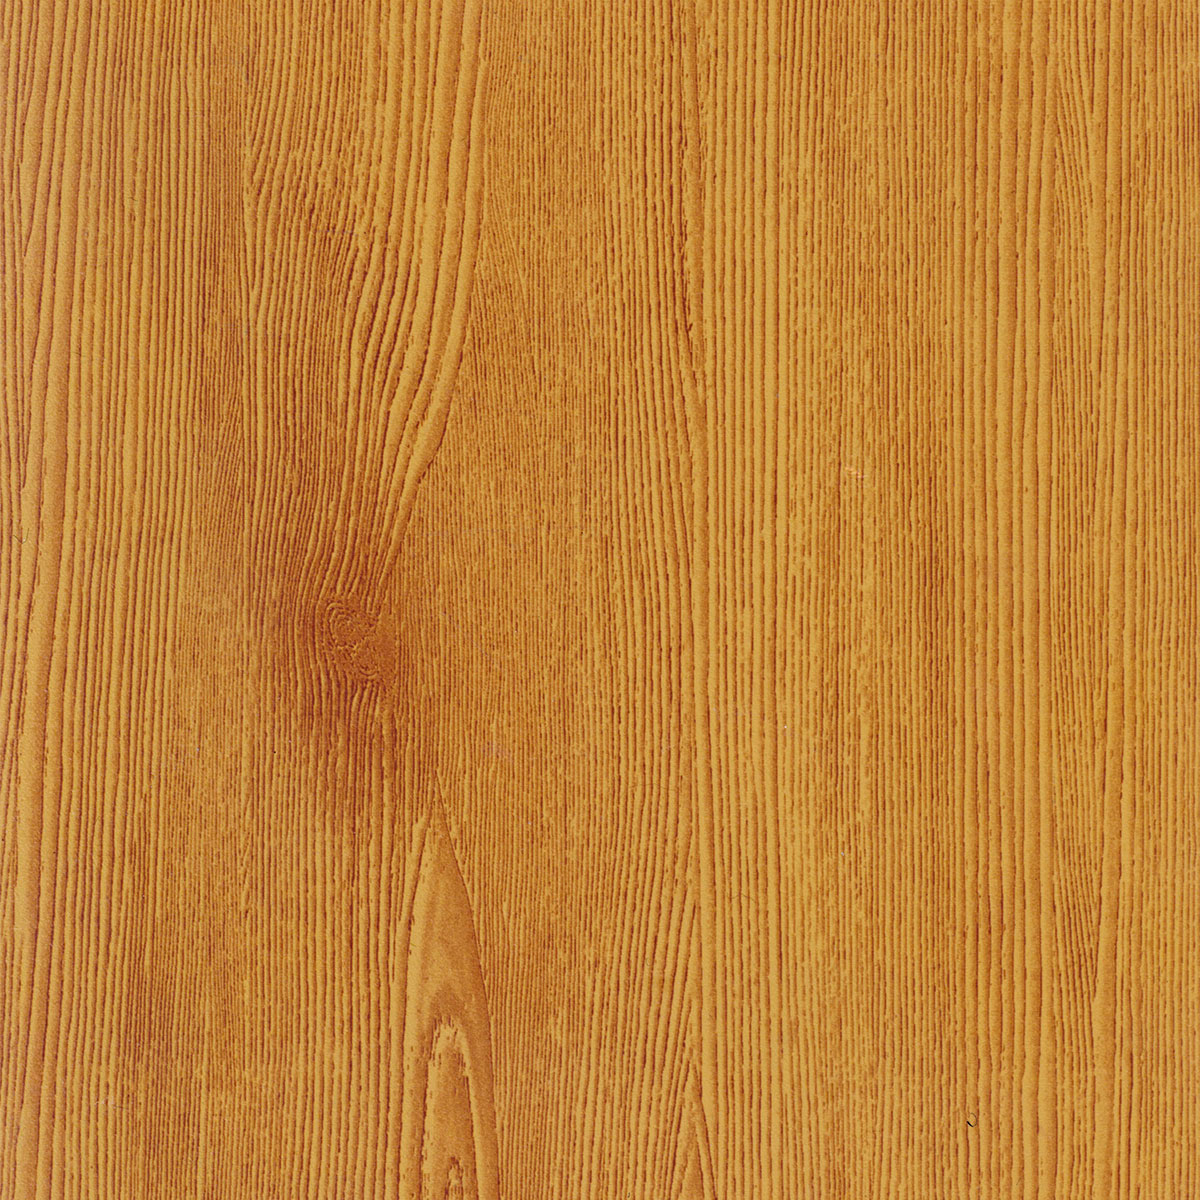 Knotwood Color: Knotty Pine